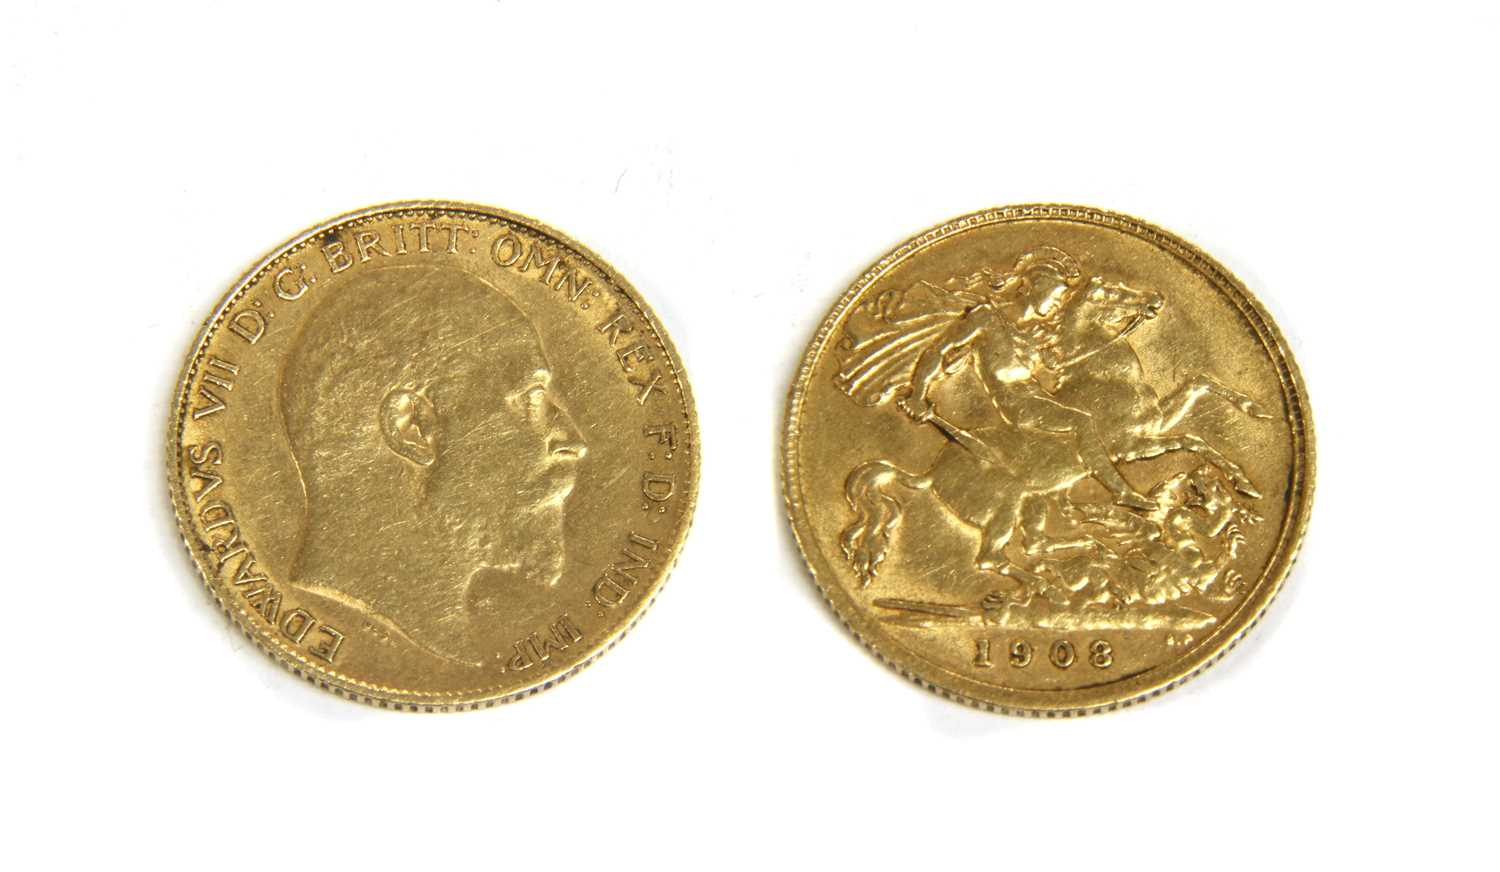 Lot 23-Coins, Great Britain, Edward VII (1901-1910)